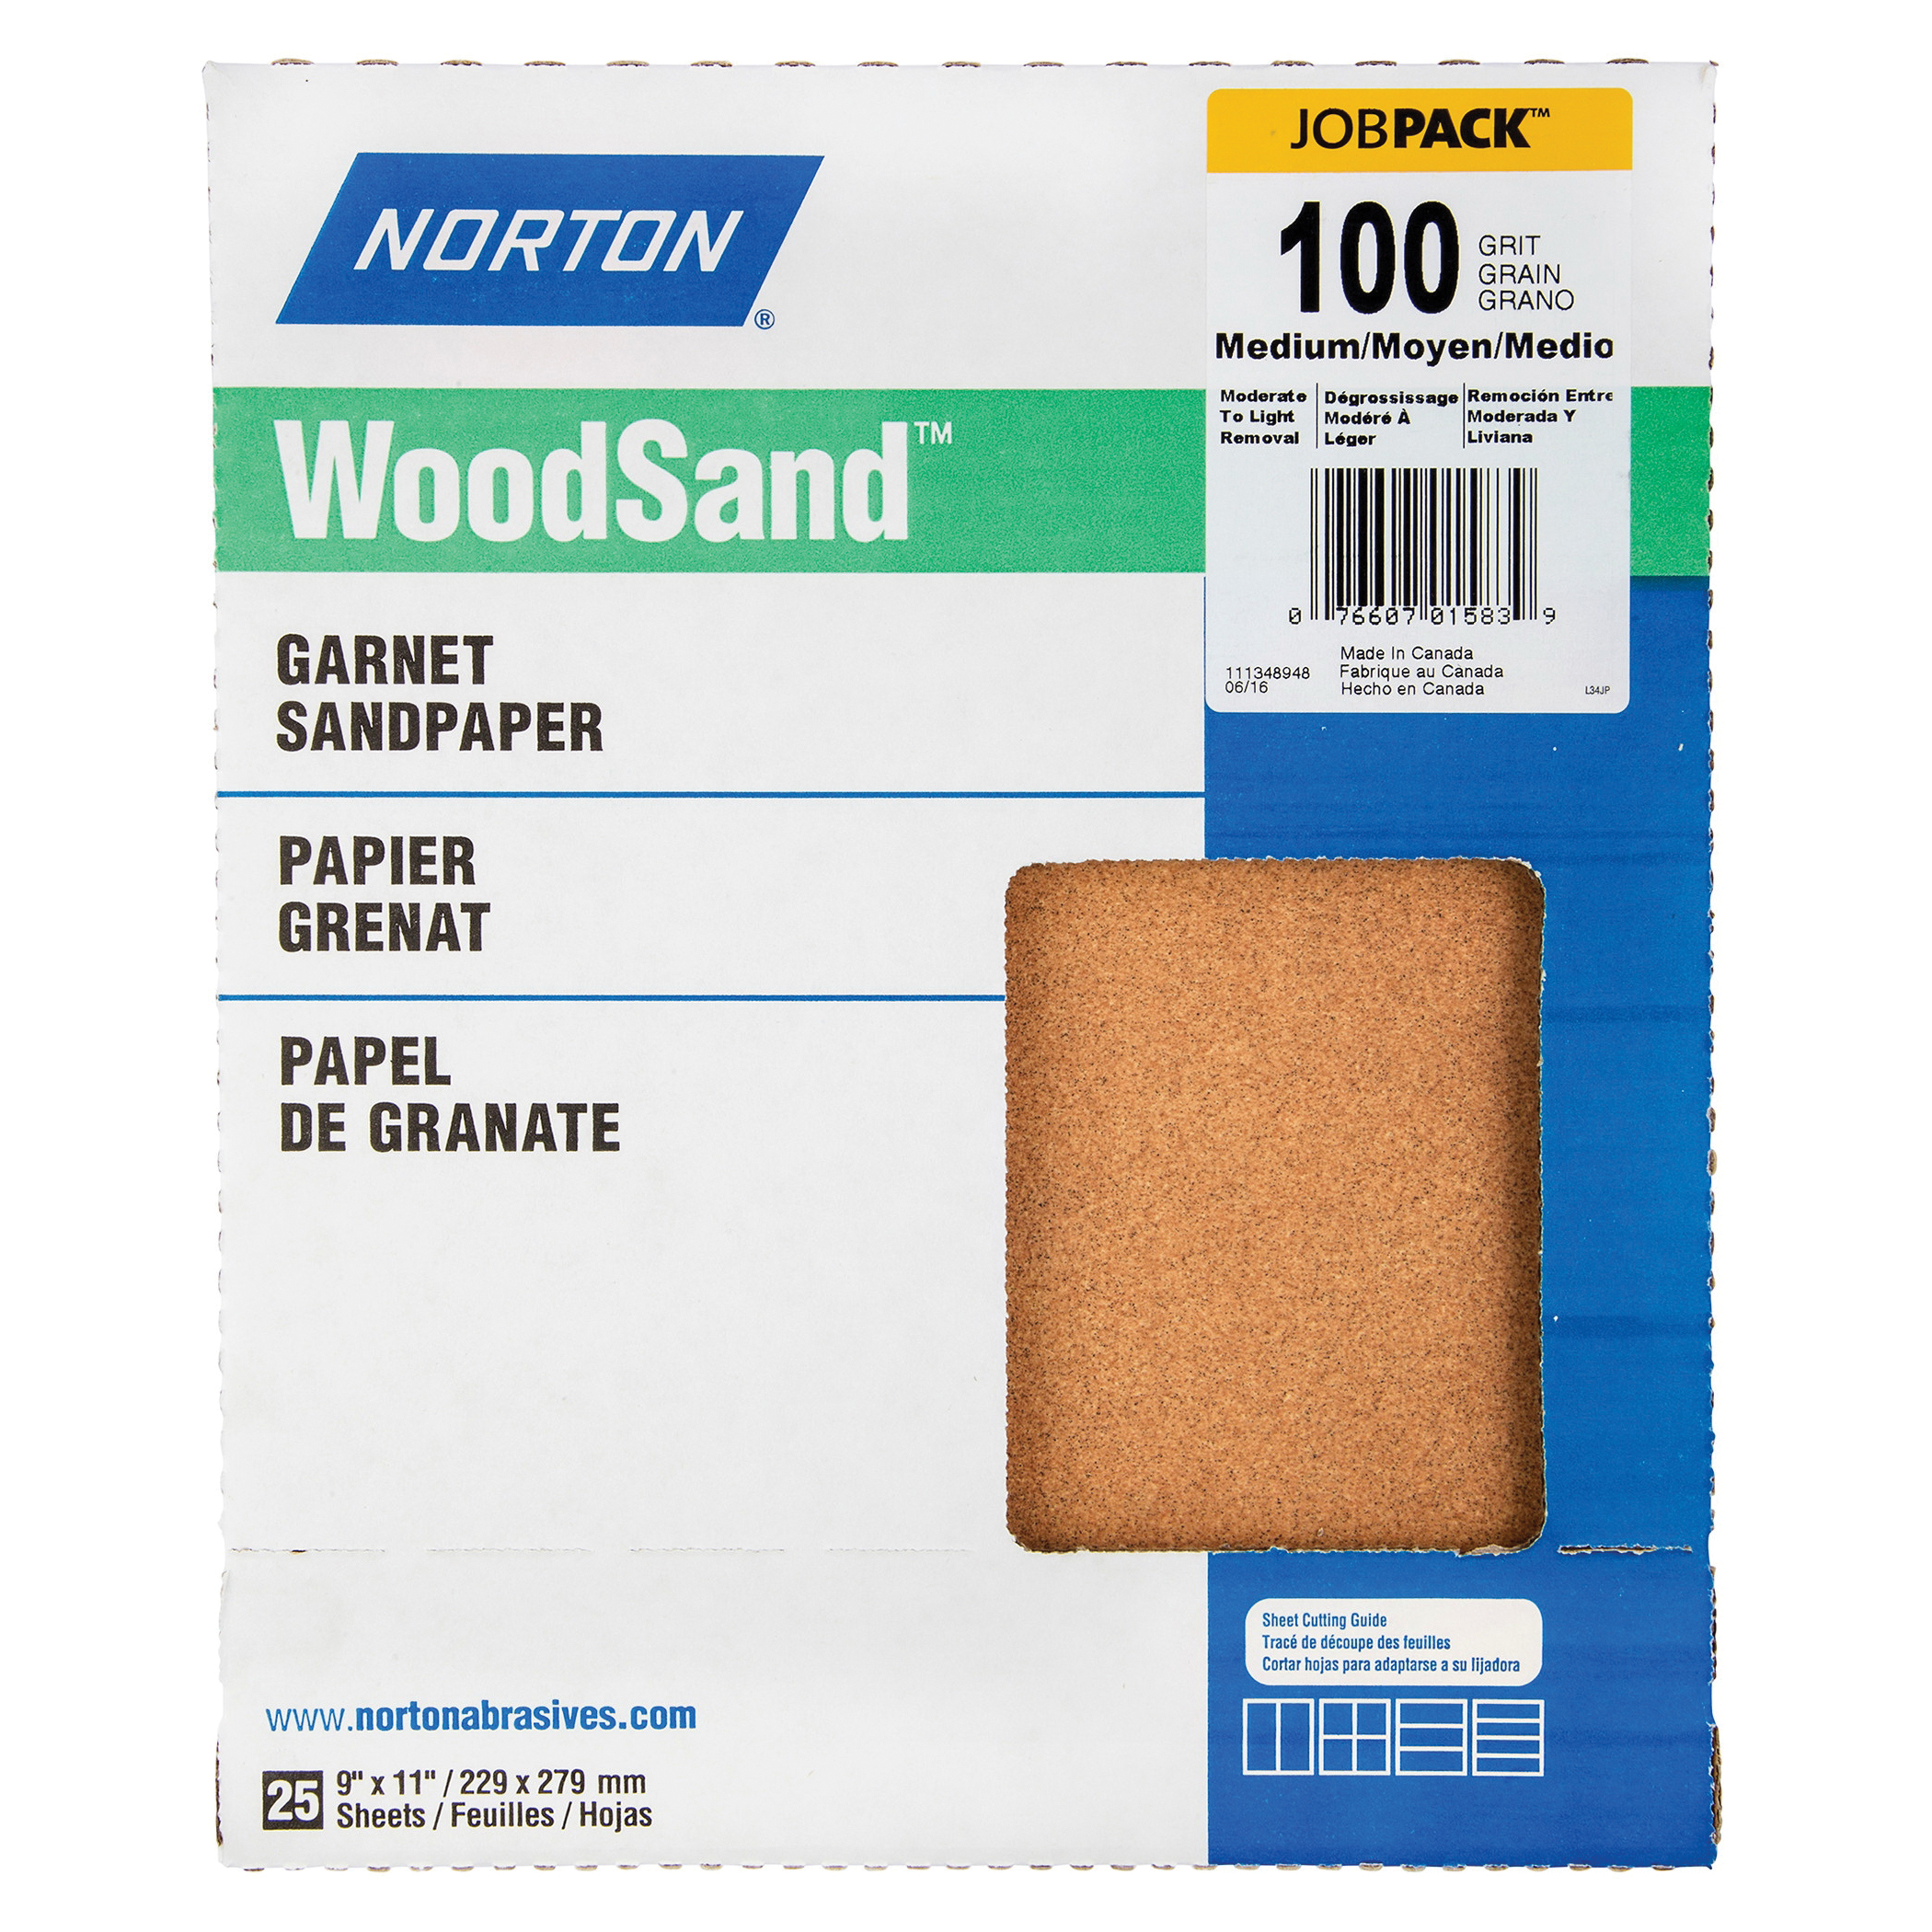 Norton® WoodSand™ Job Pack™ 07660701583 A513 Coated Sandpaper Sheet, 11 in L x 9 in W, 100 Grit, Medium Grade, Garnet Abrasive, Paper Backing